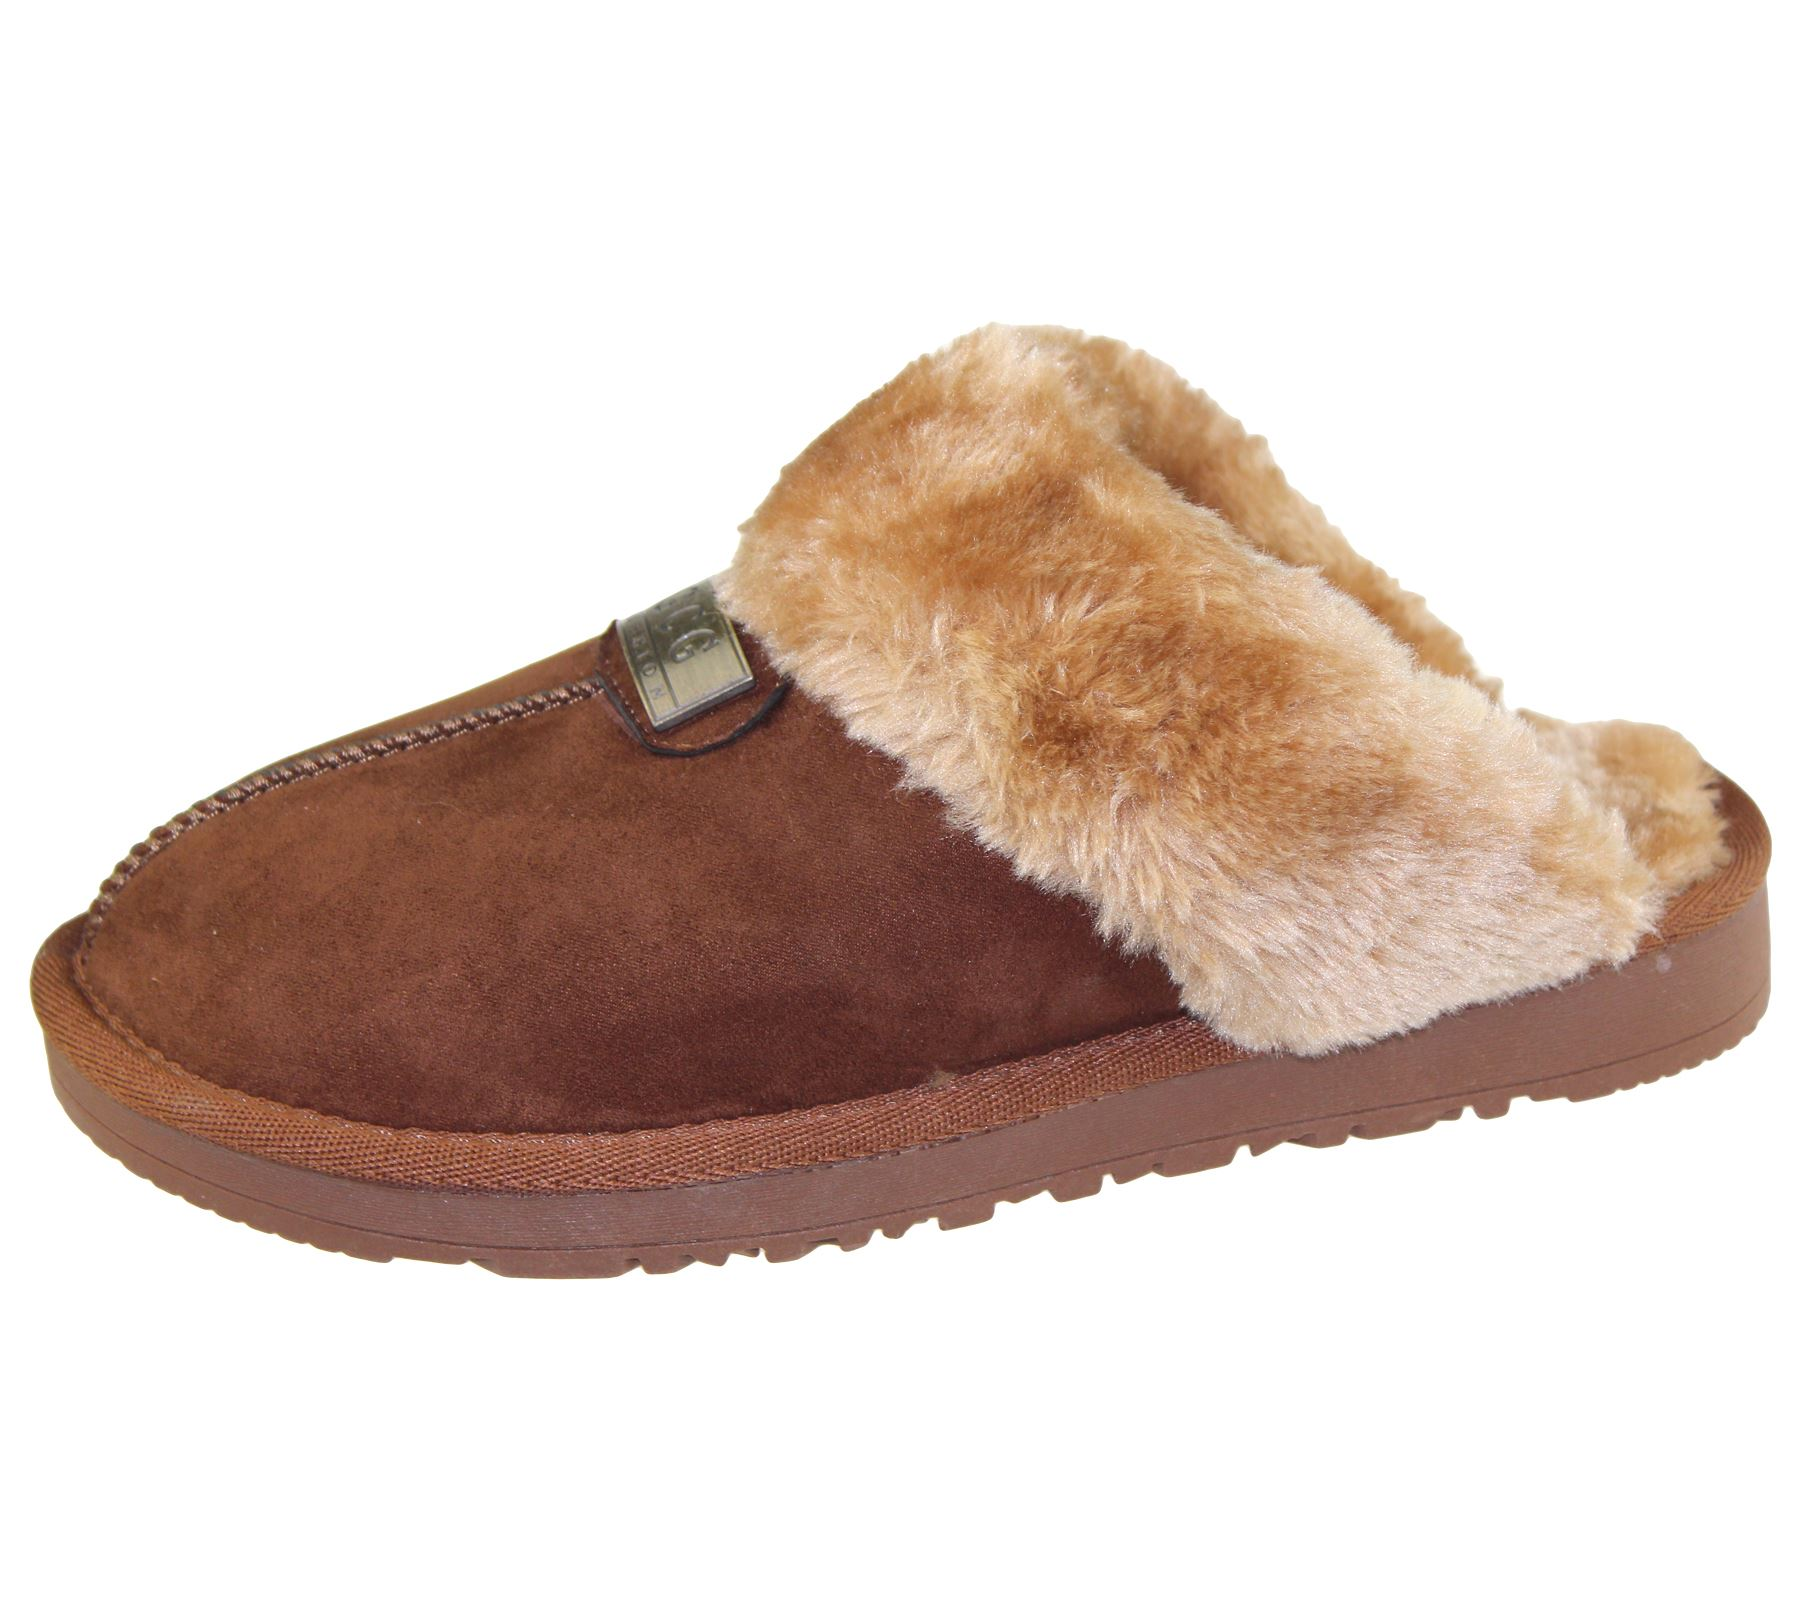 Womens-Fur-Lined-Slippers-Ladies-Mules-Non-Slip-Rubber-Sole-Shoes miniatura 17